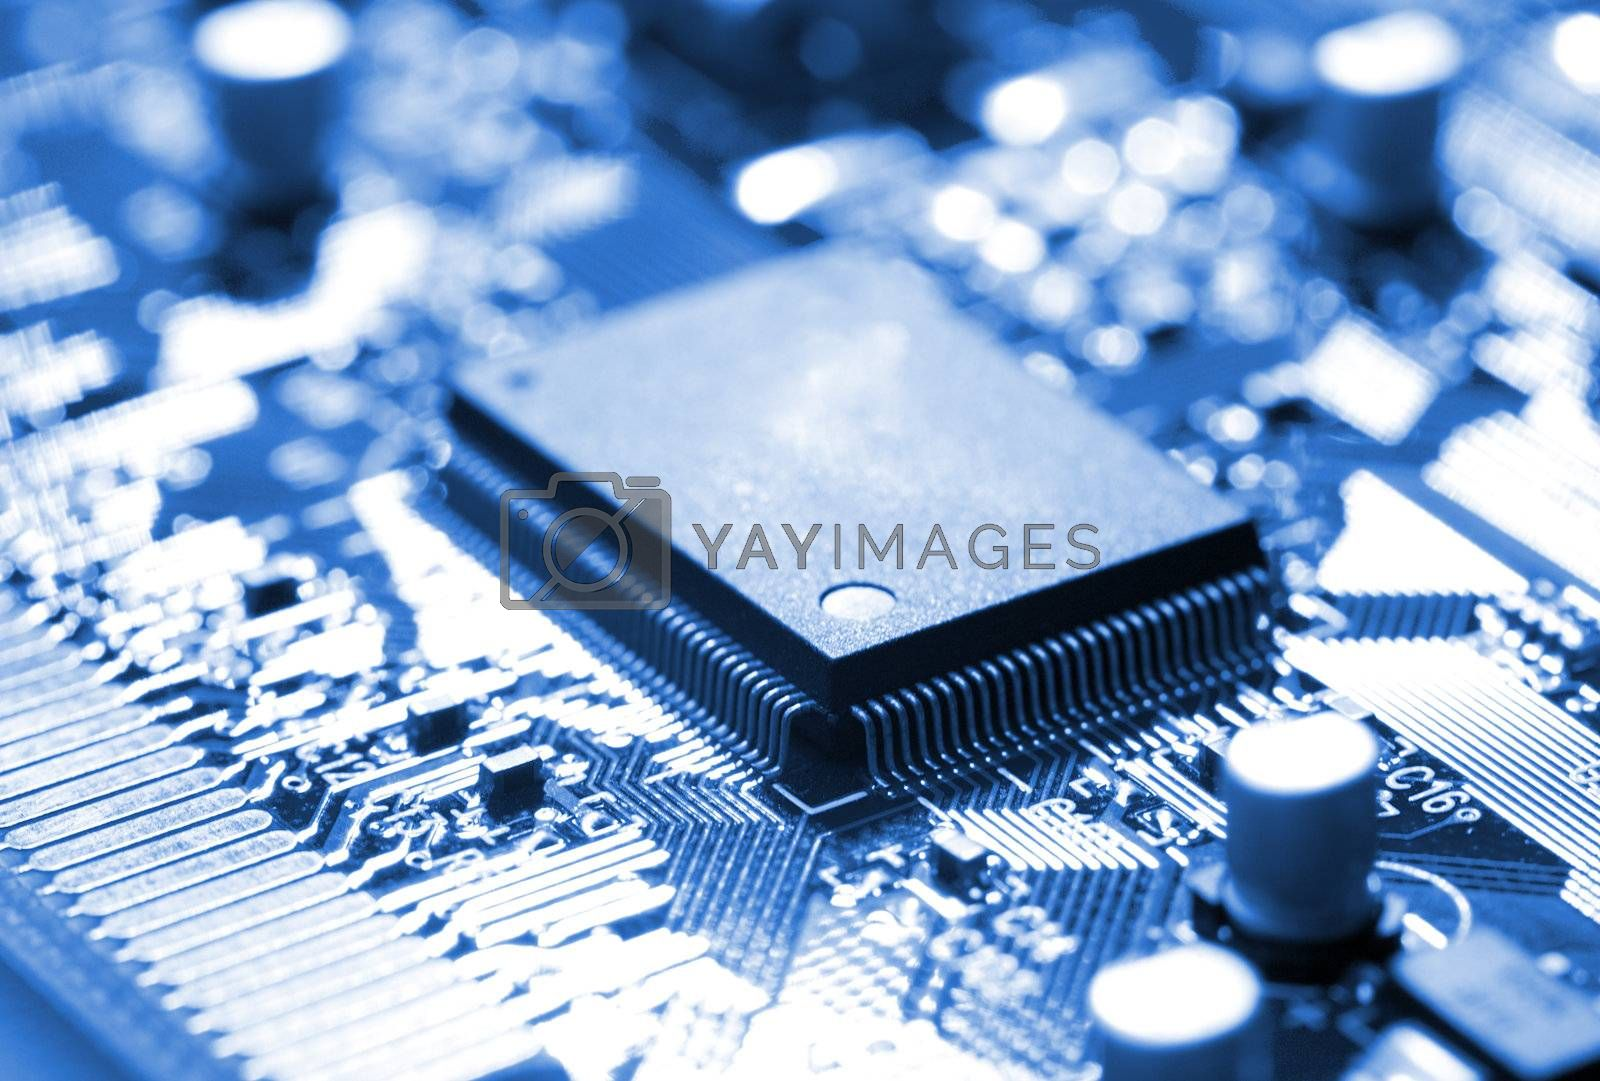 close-up microchip on circuit board, blue toning